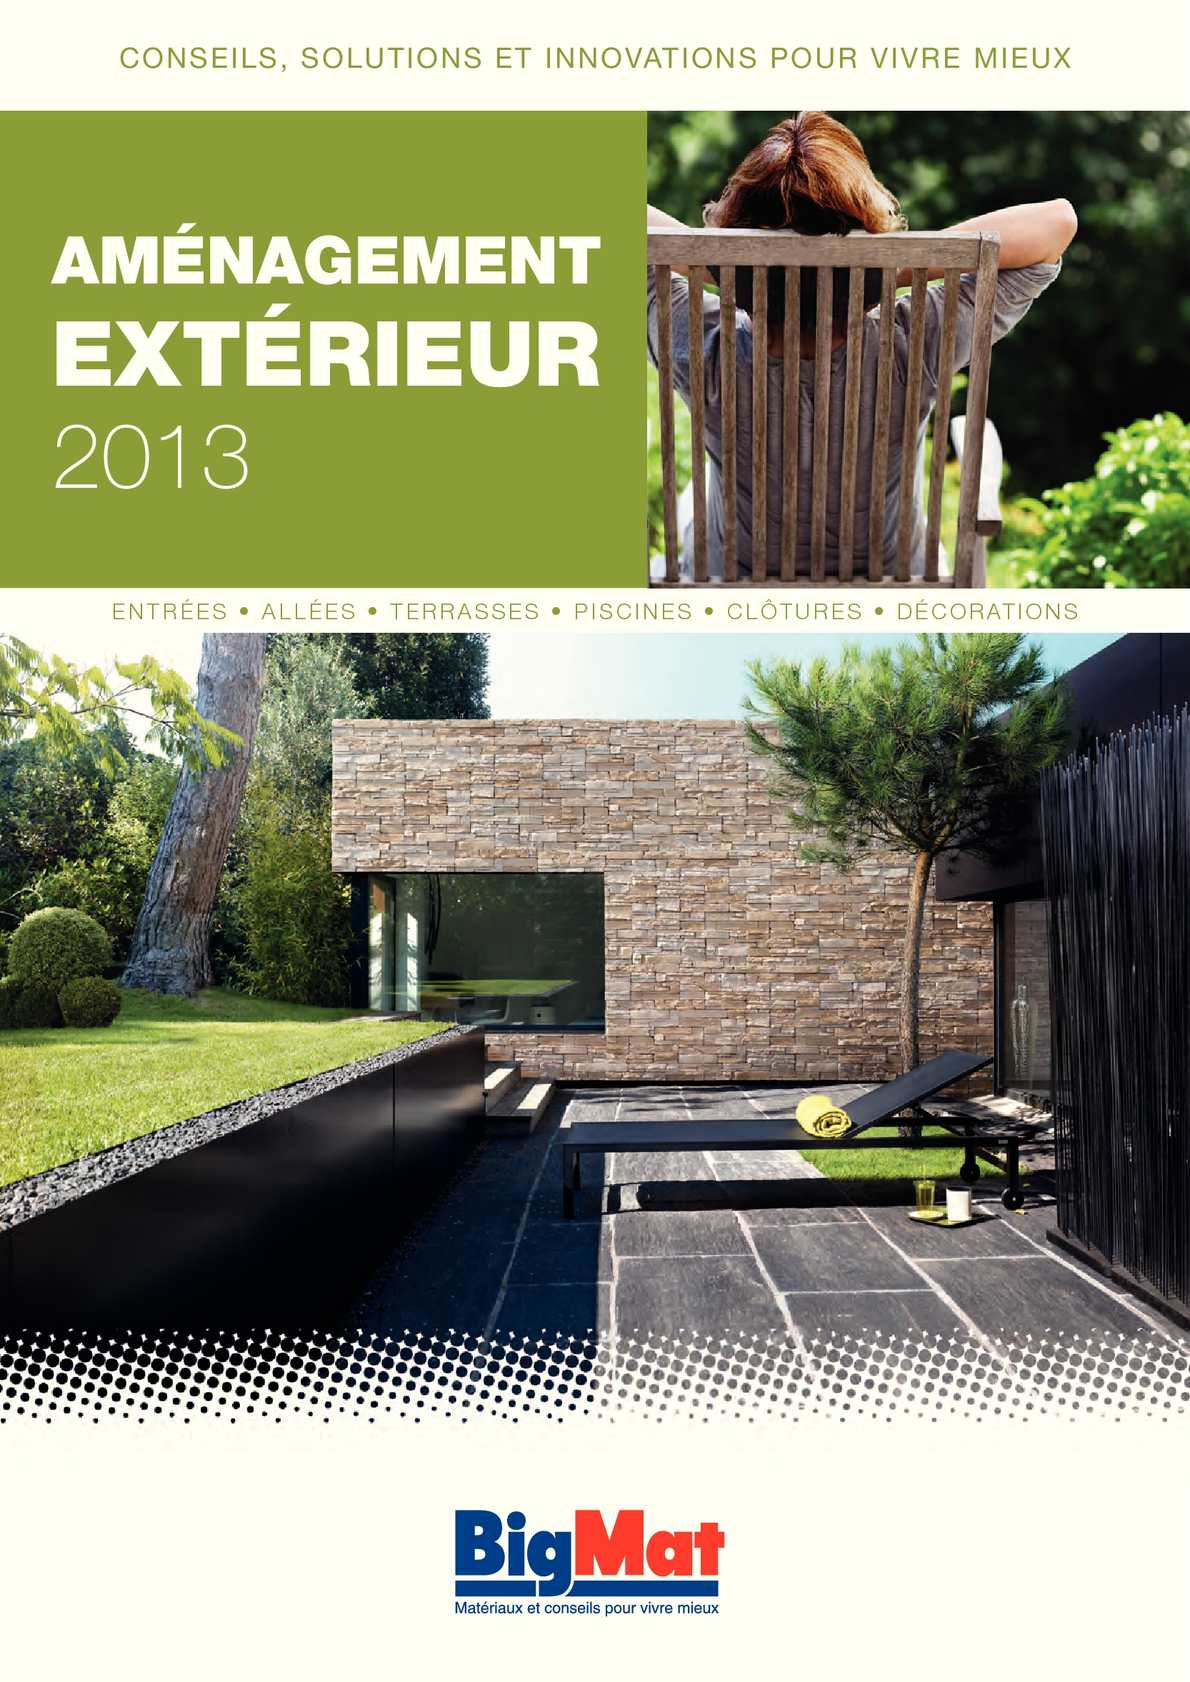 Amenagement Terrasse Ouest Calaméo Catalogue Bigmat Amenagement Exterieur 2013